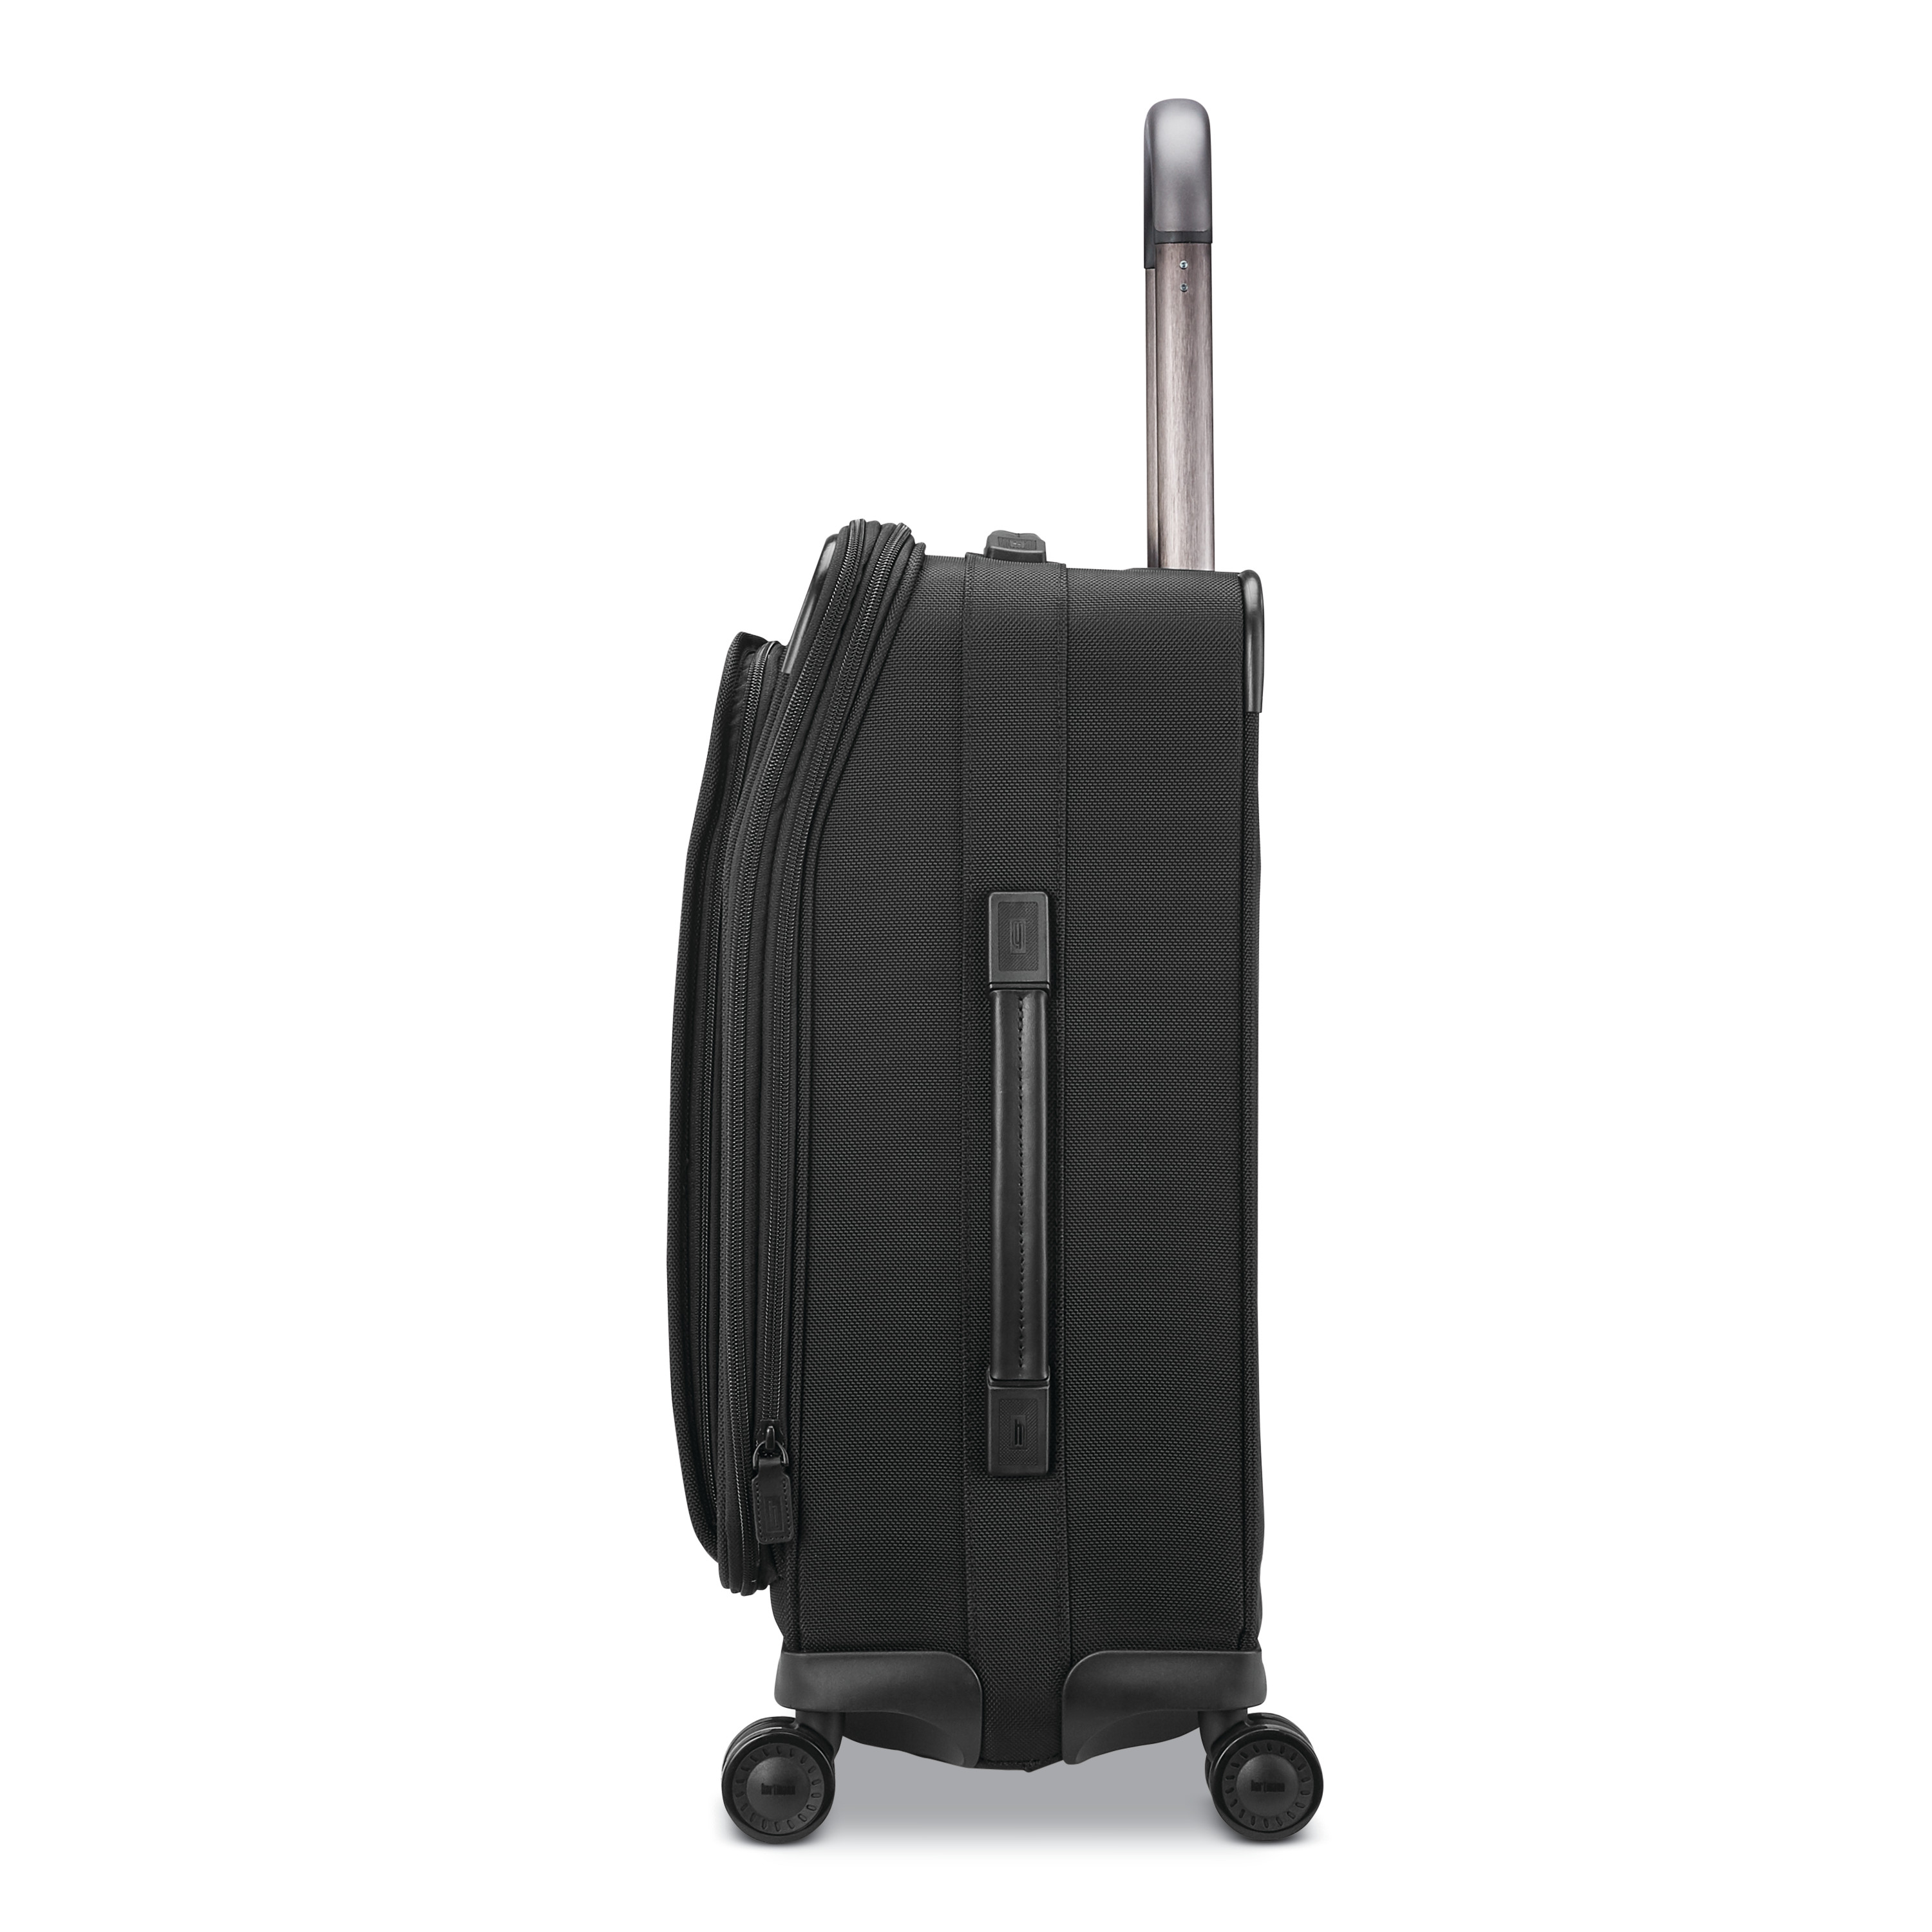 0d37ff68c0c1d Hartmann Ratio 2 Domestic Carry-On Spinner in the color True Black.